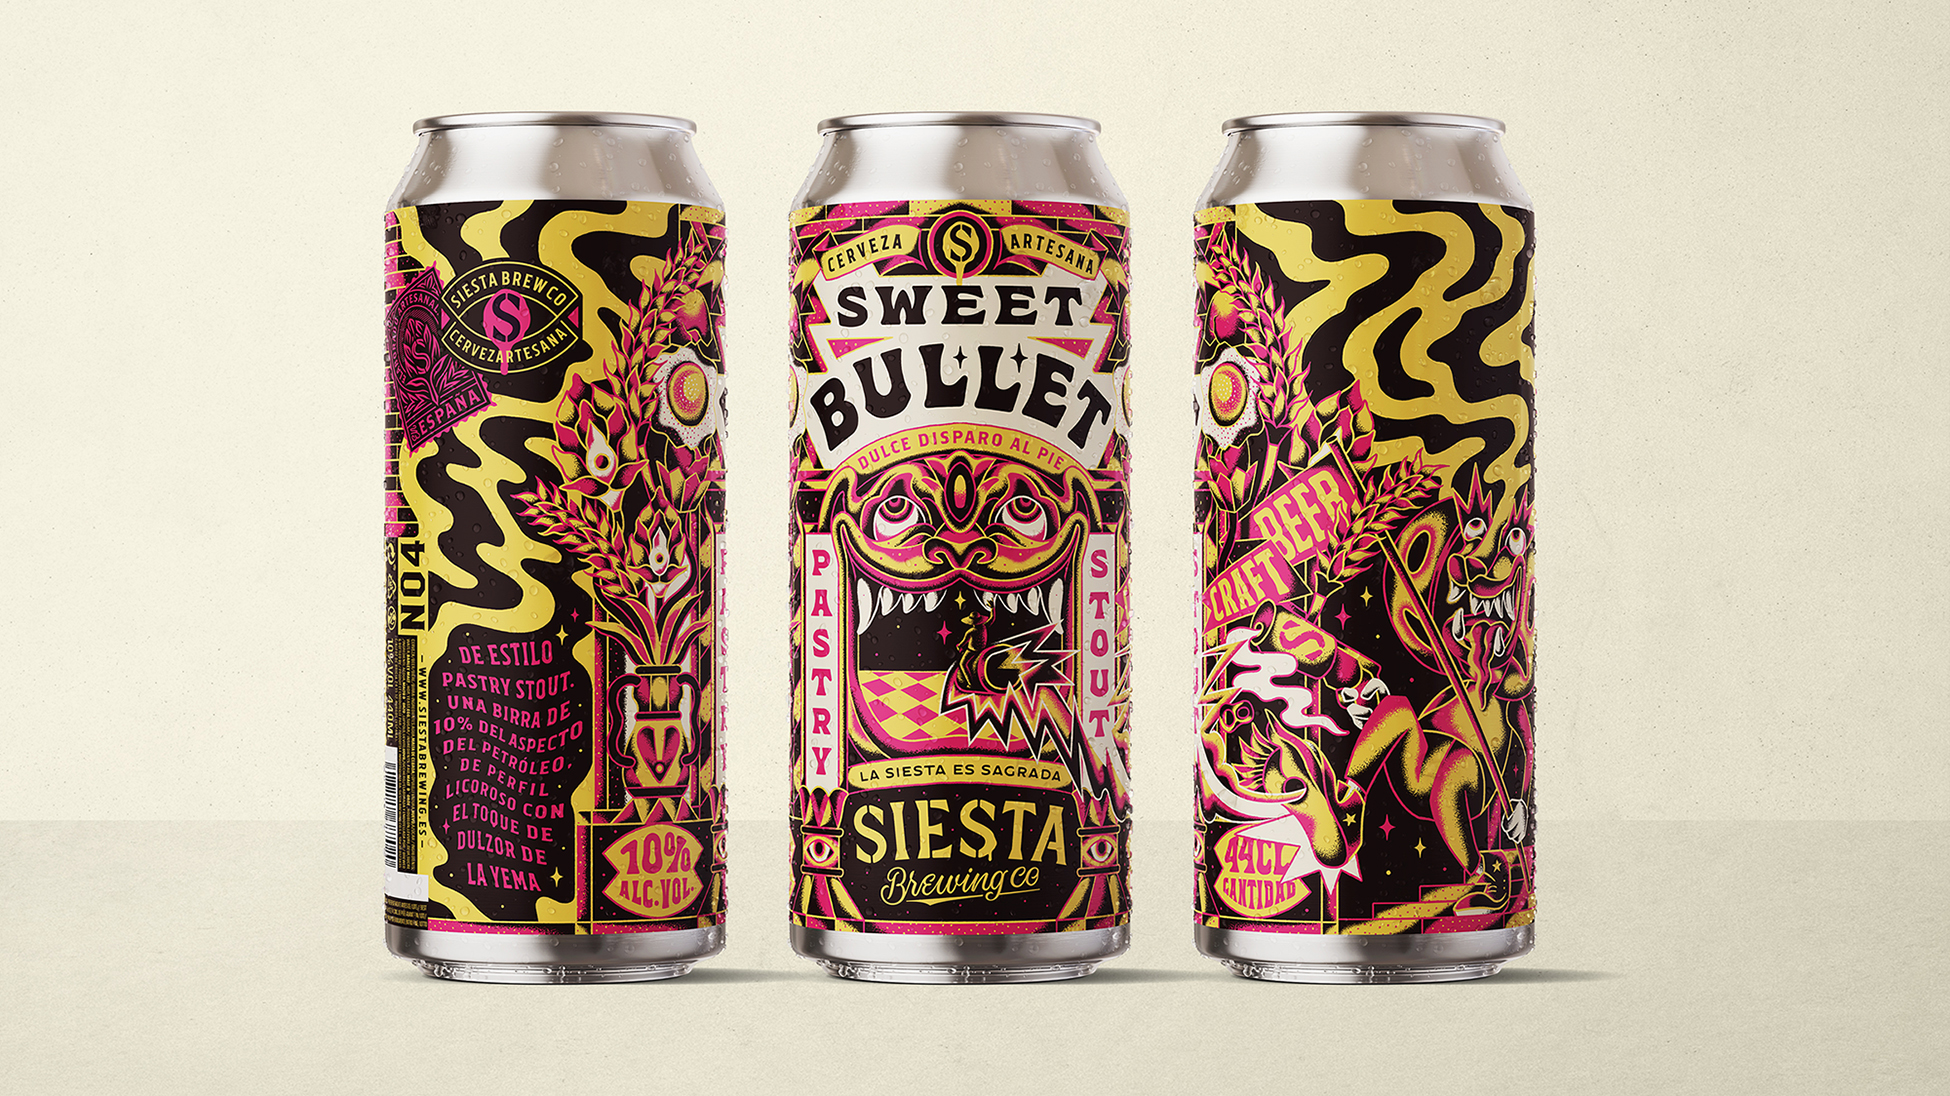 Sweet Bullet for Siesta Brewing Co by Luis Utrillas